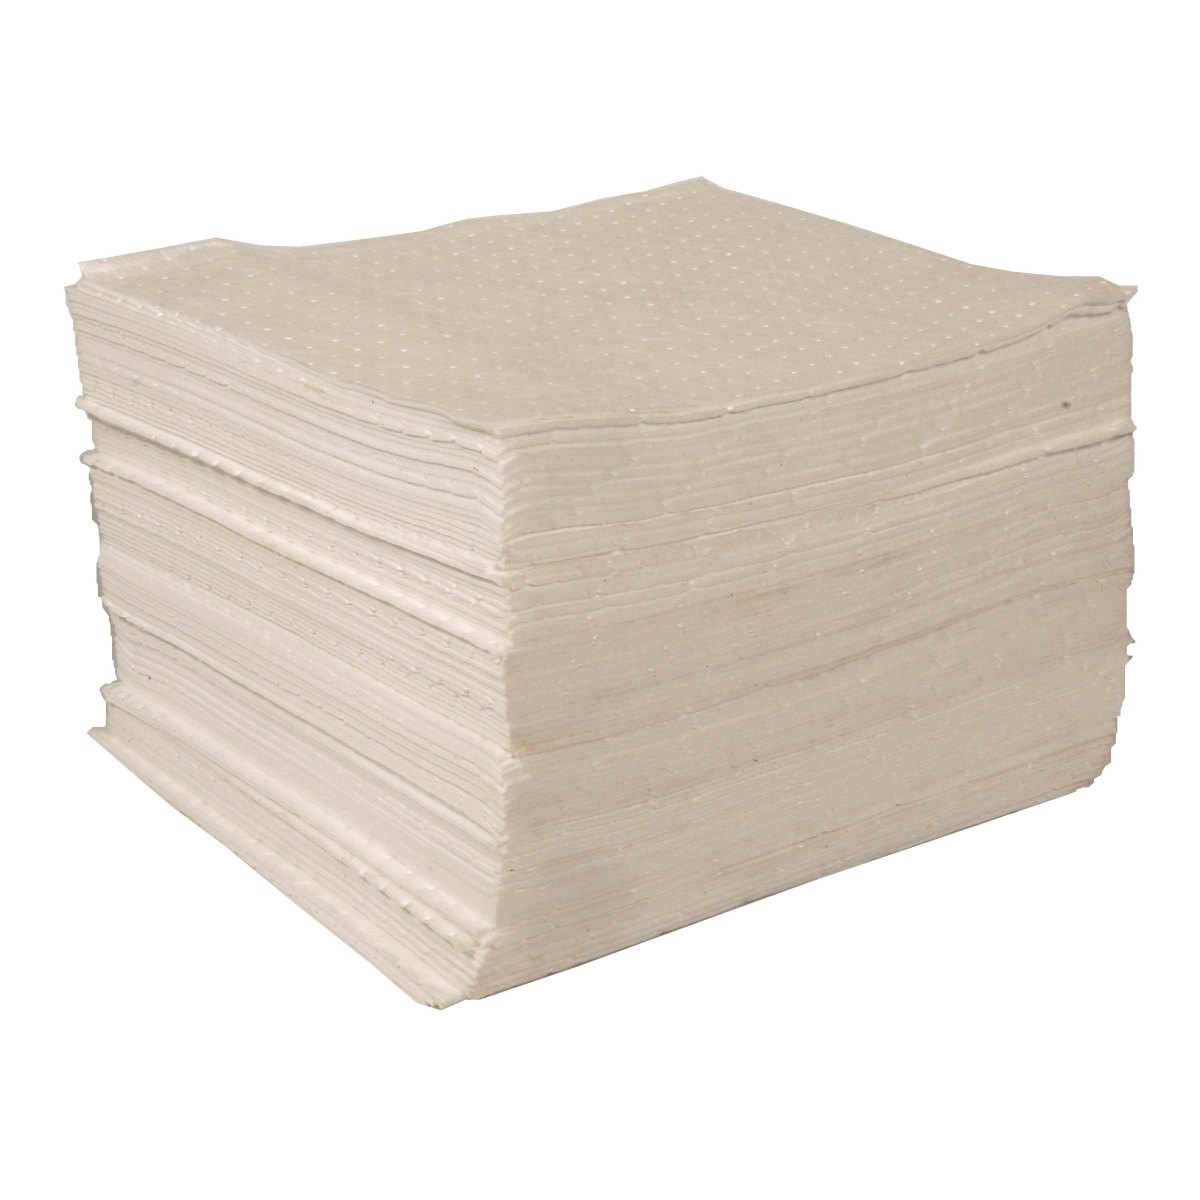 Oil Absorbent Spill Pads 75 Litre Pack of 100